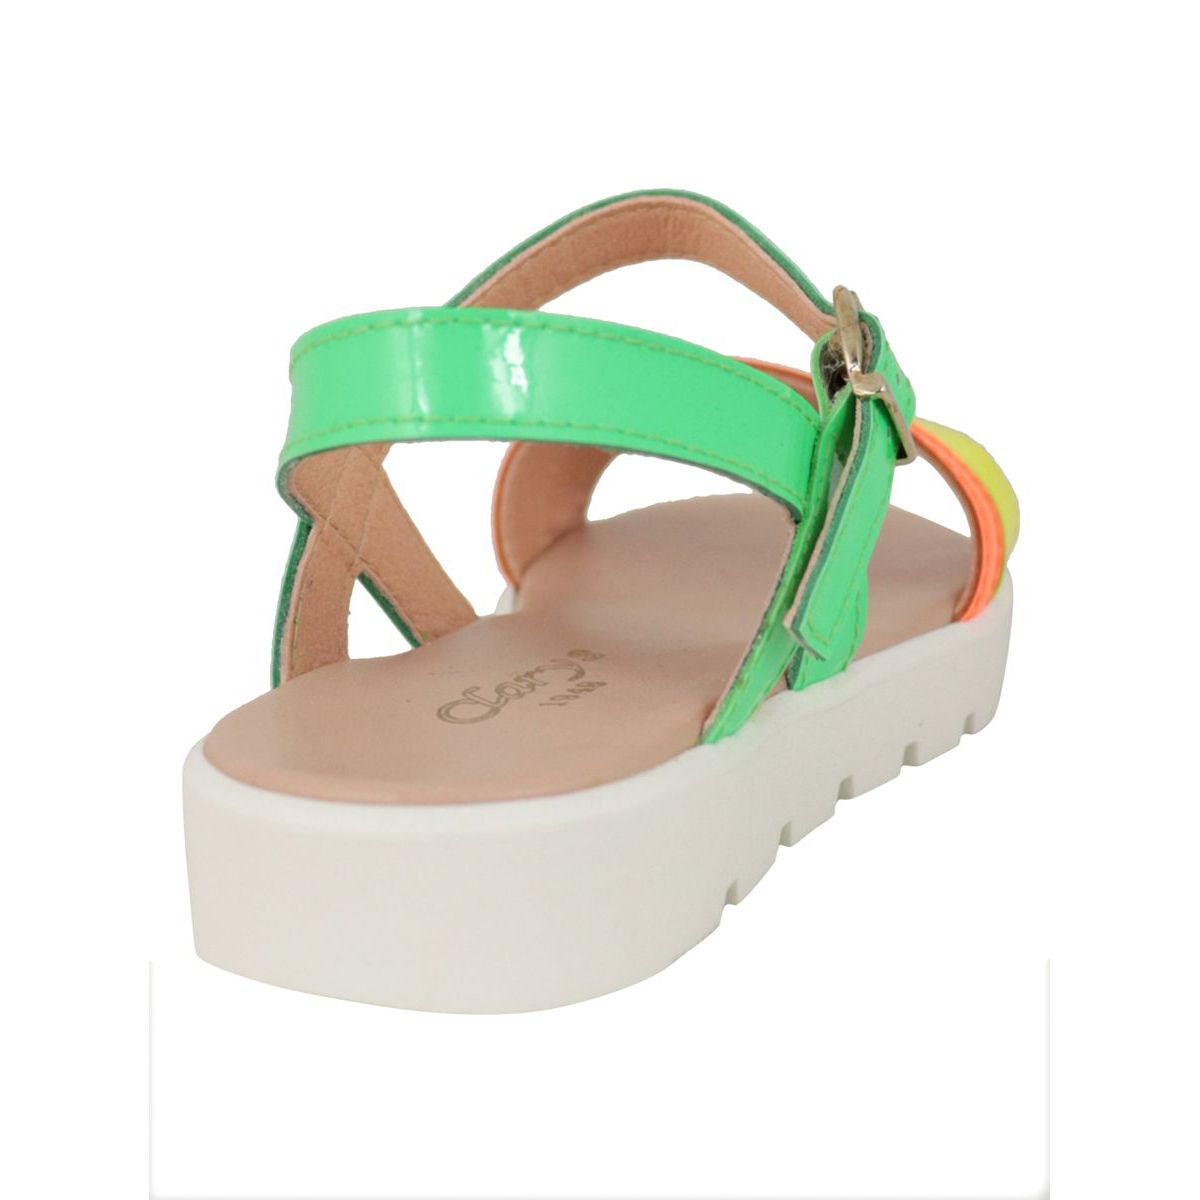 Leather sandal with buckles Multicolor Clarys